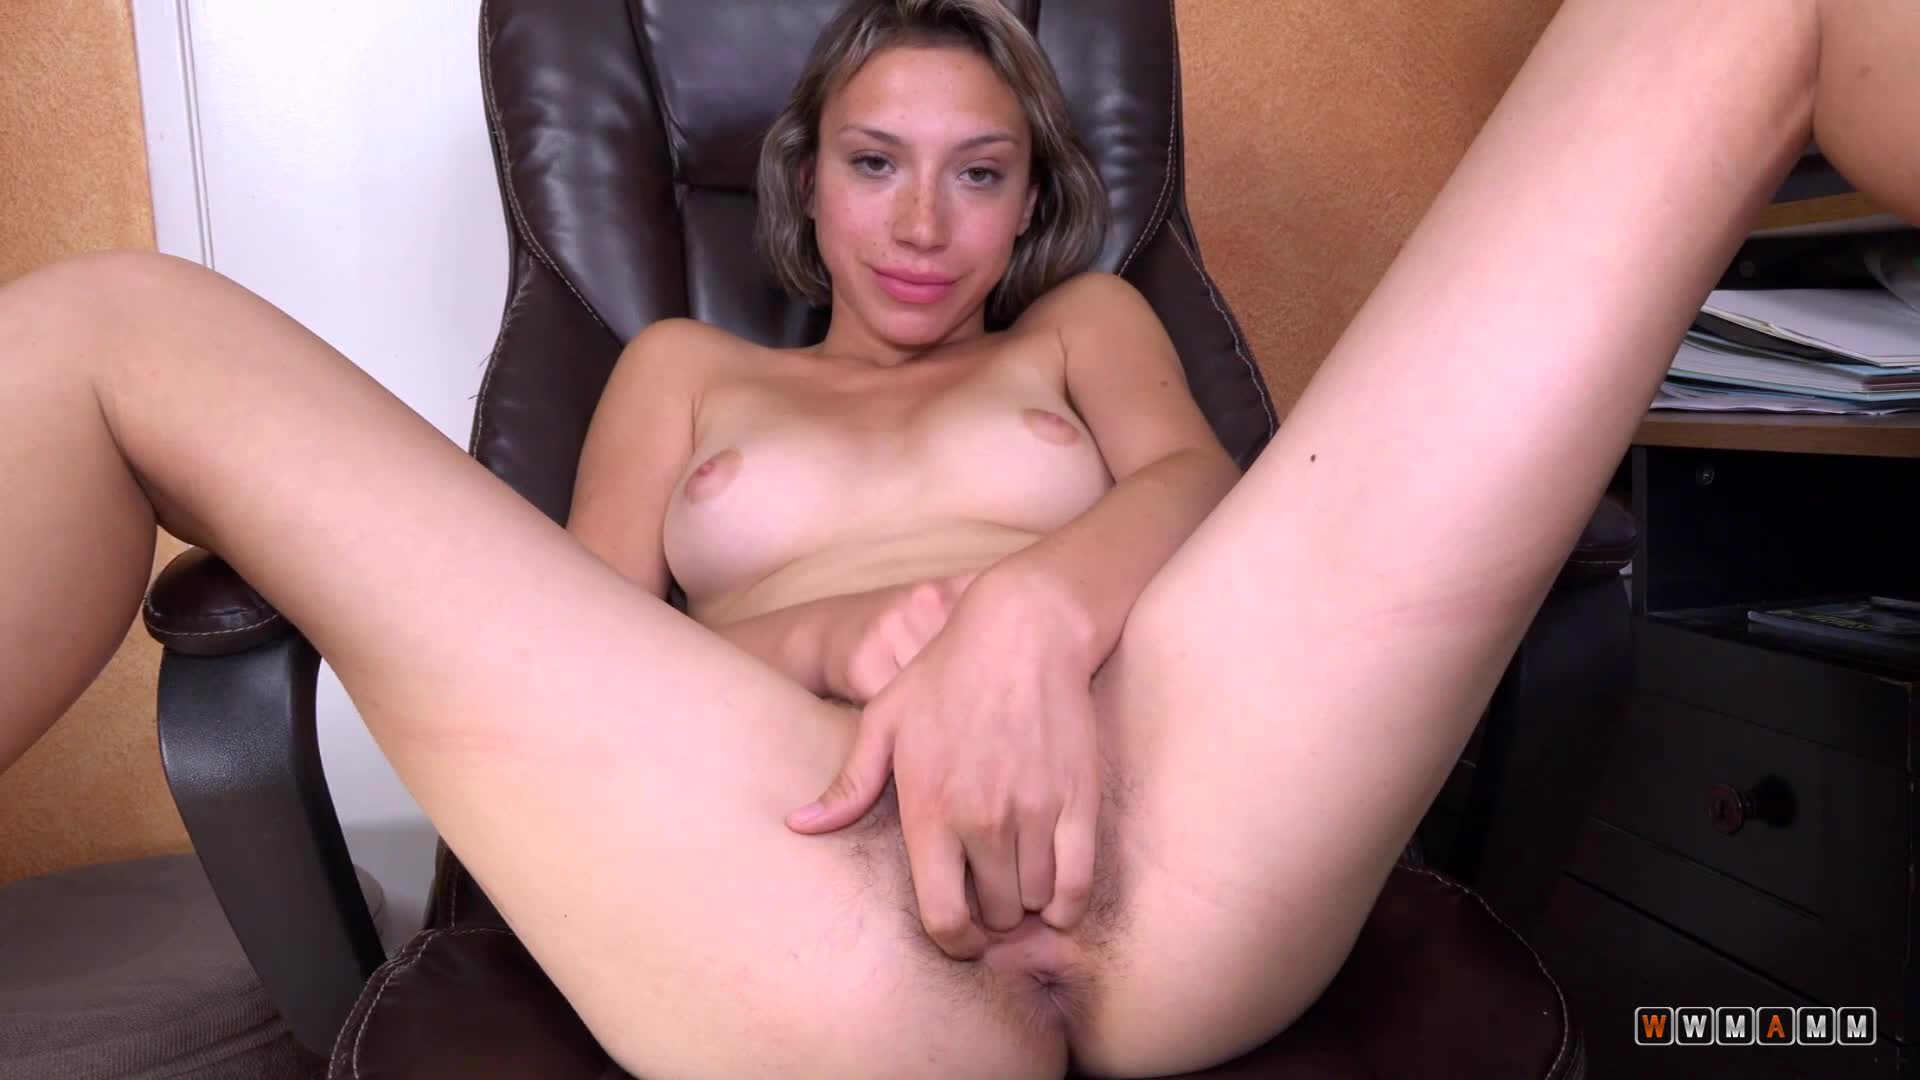 Amber Faye Gets Horny While Watching Lesbian Porn In The Office